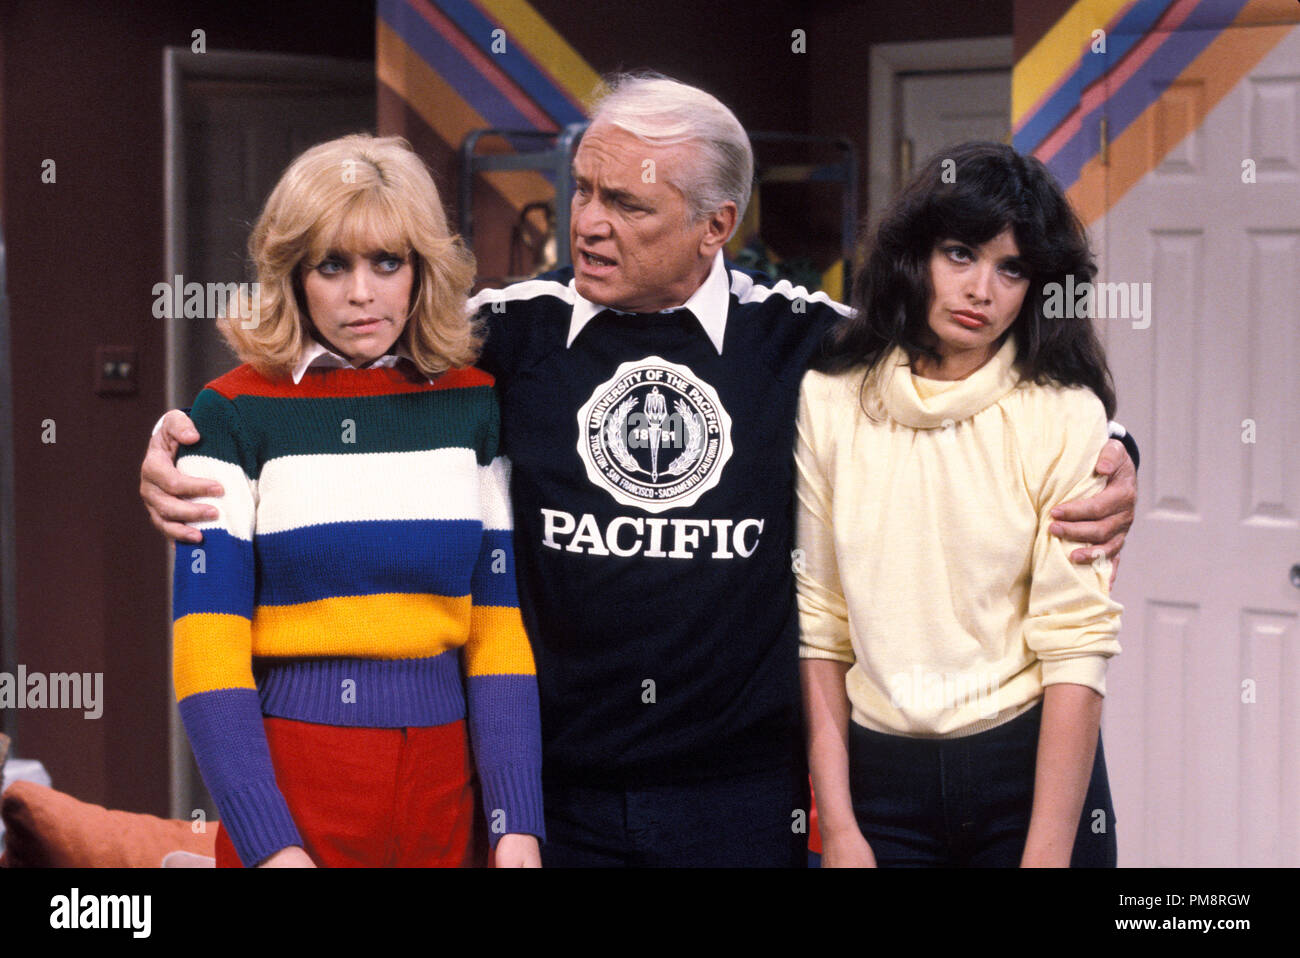 Studio Publicity Still from 'Too Close for Comfort' Lydia Cornell, Ted Knight, Deborah Van Valkenburgh 1980   All Rights Reserved   File Reference # 31715025THA  For Editorial Use Only - Stock Image